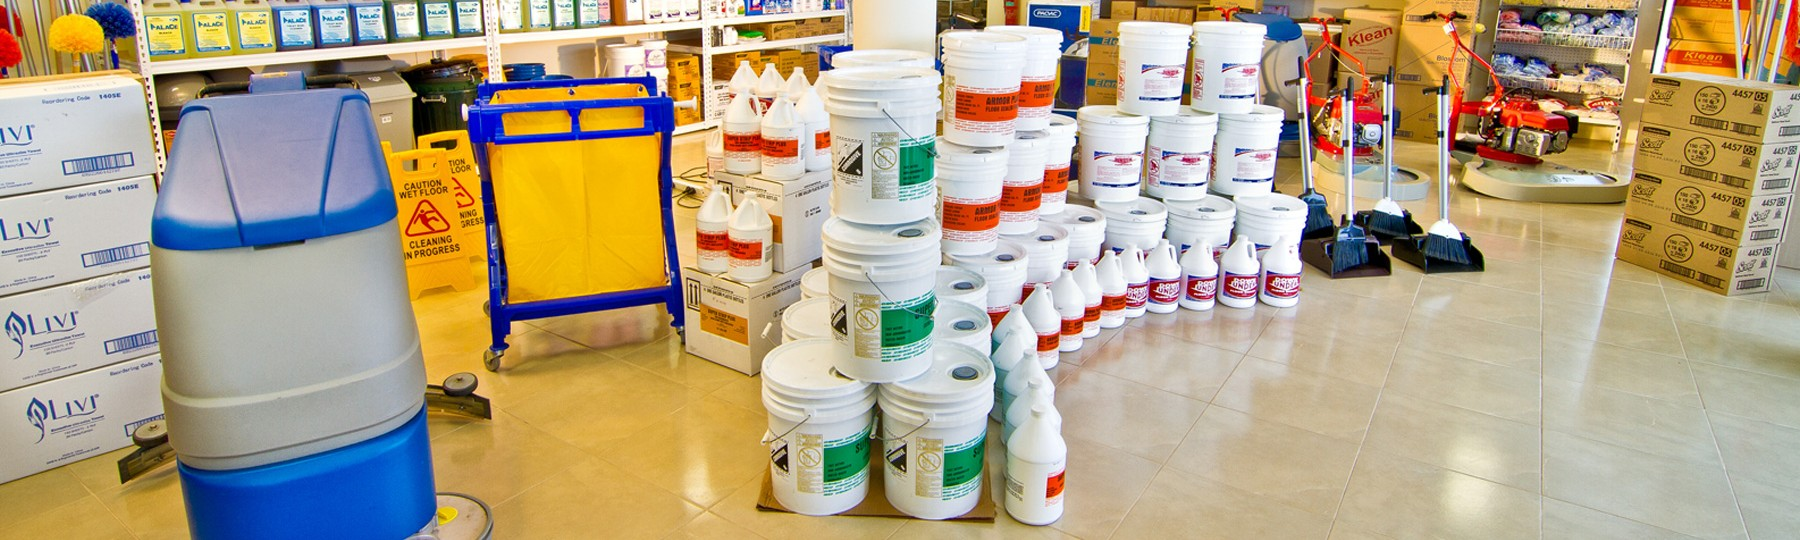 How to Safely Store Cleaning Chemicals at Your Workplace